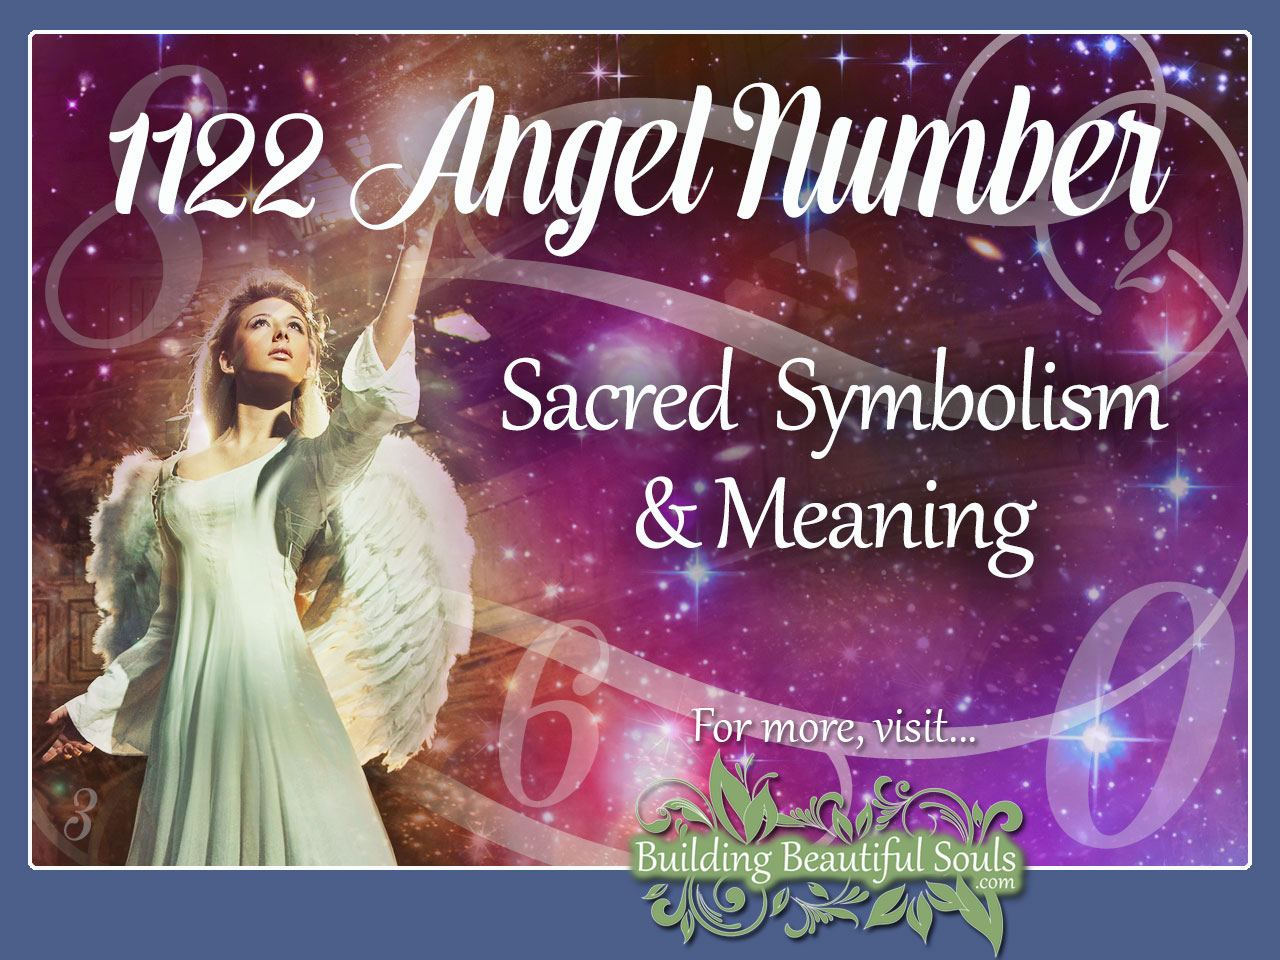 1122 Angel Number | What Does 1122 Mean in Spiritual, Love